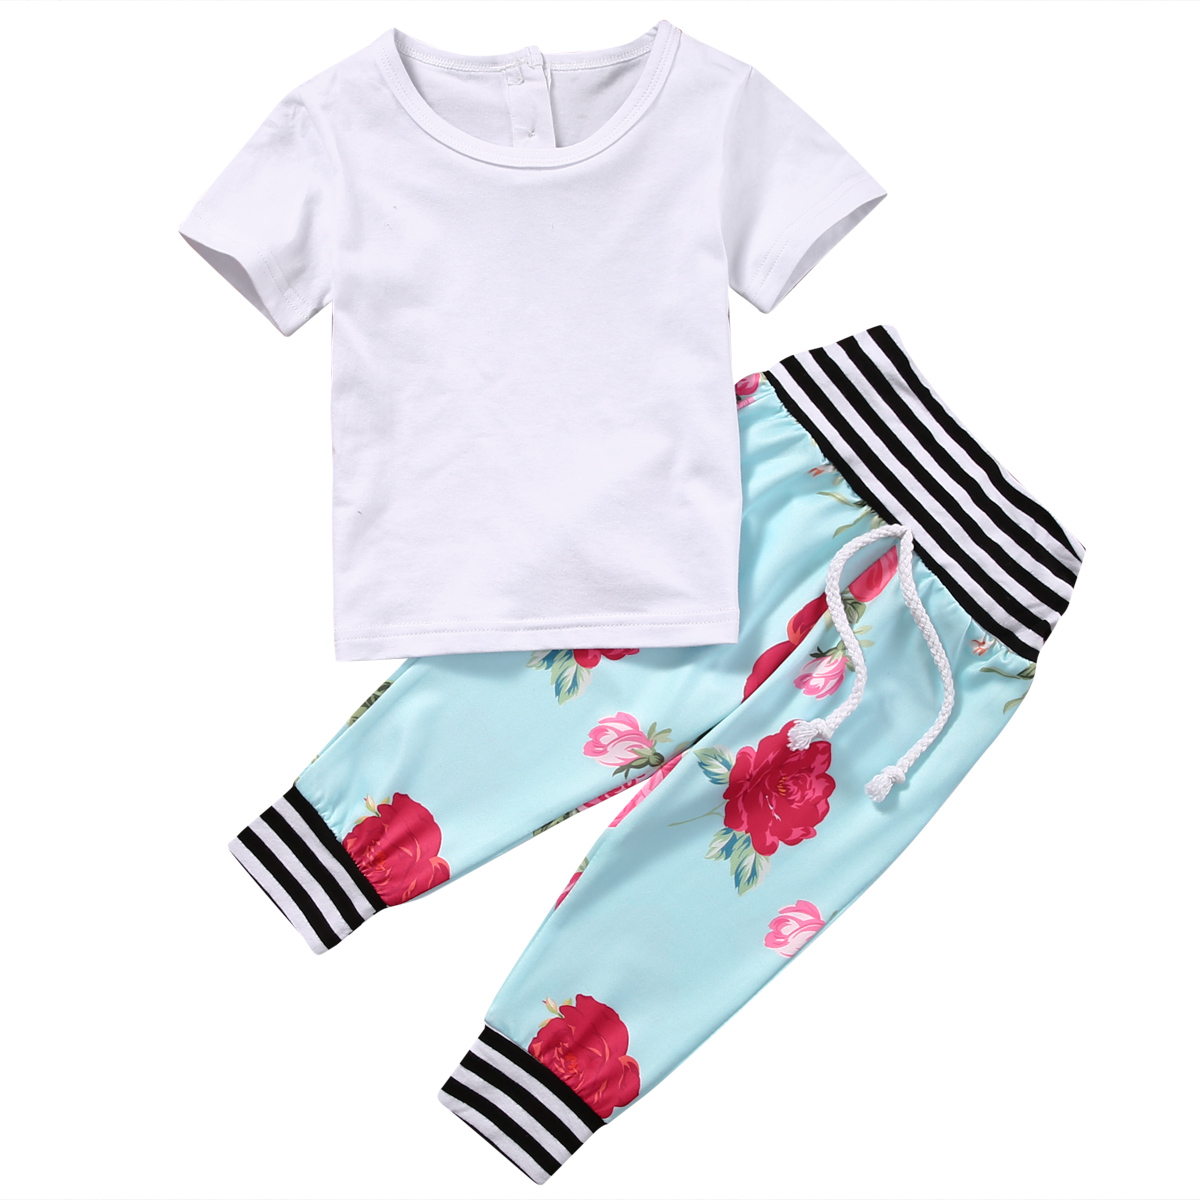 2017 Summer Hot sales Newborn Baby Boys Girls Clothes White Cotton Short Sleeve T-shirt+ Floral Pants Outfits Baby Clothing Set